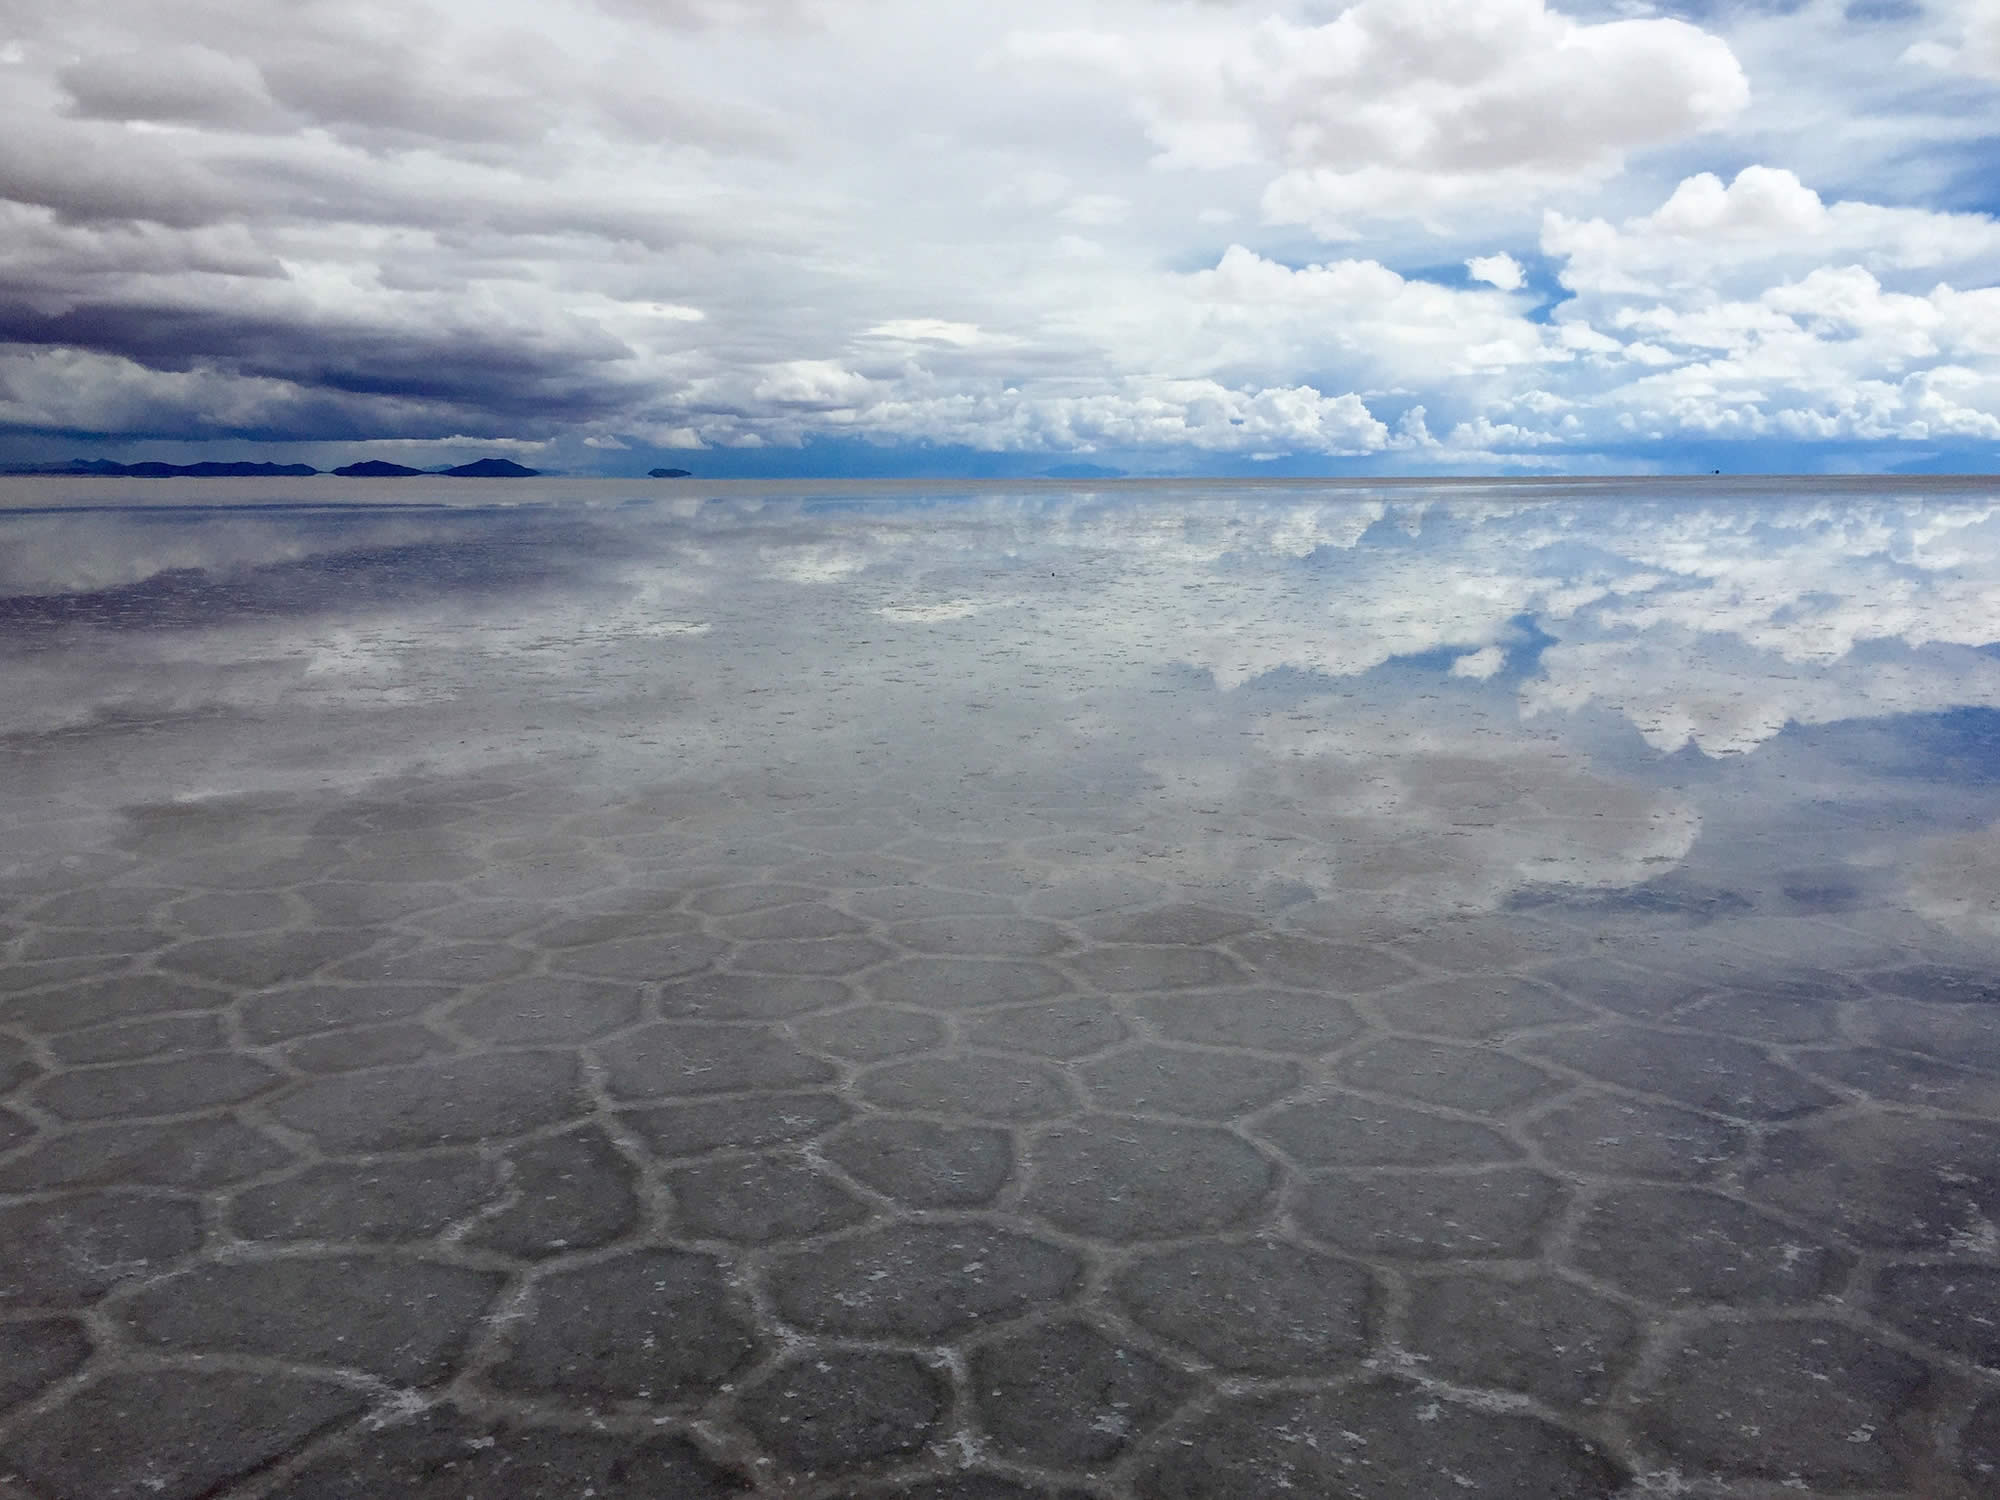 Water in the Salar de Uyuni